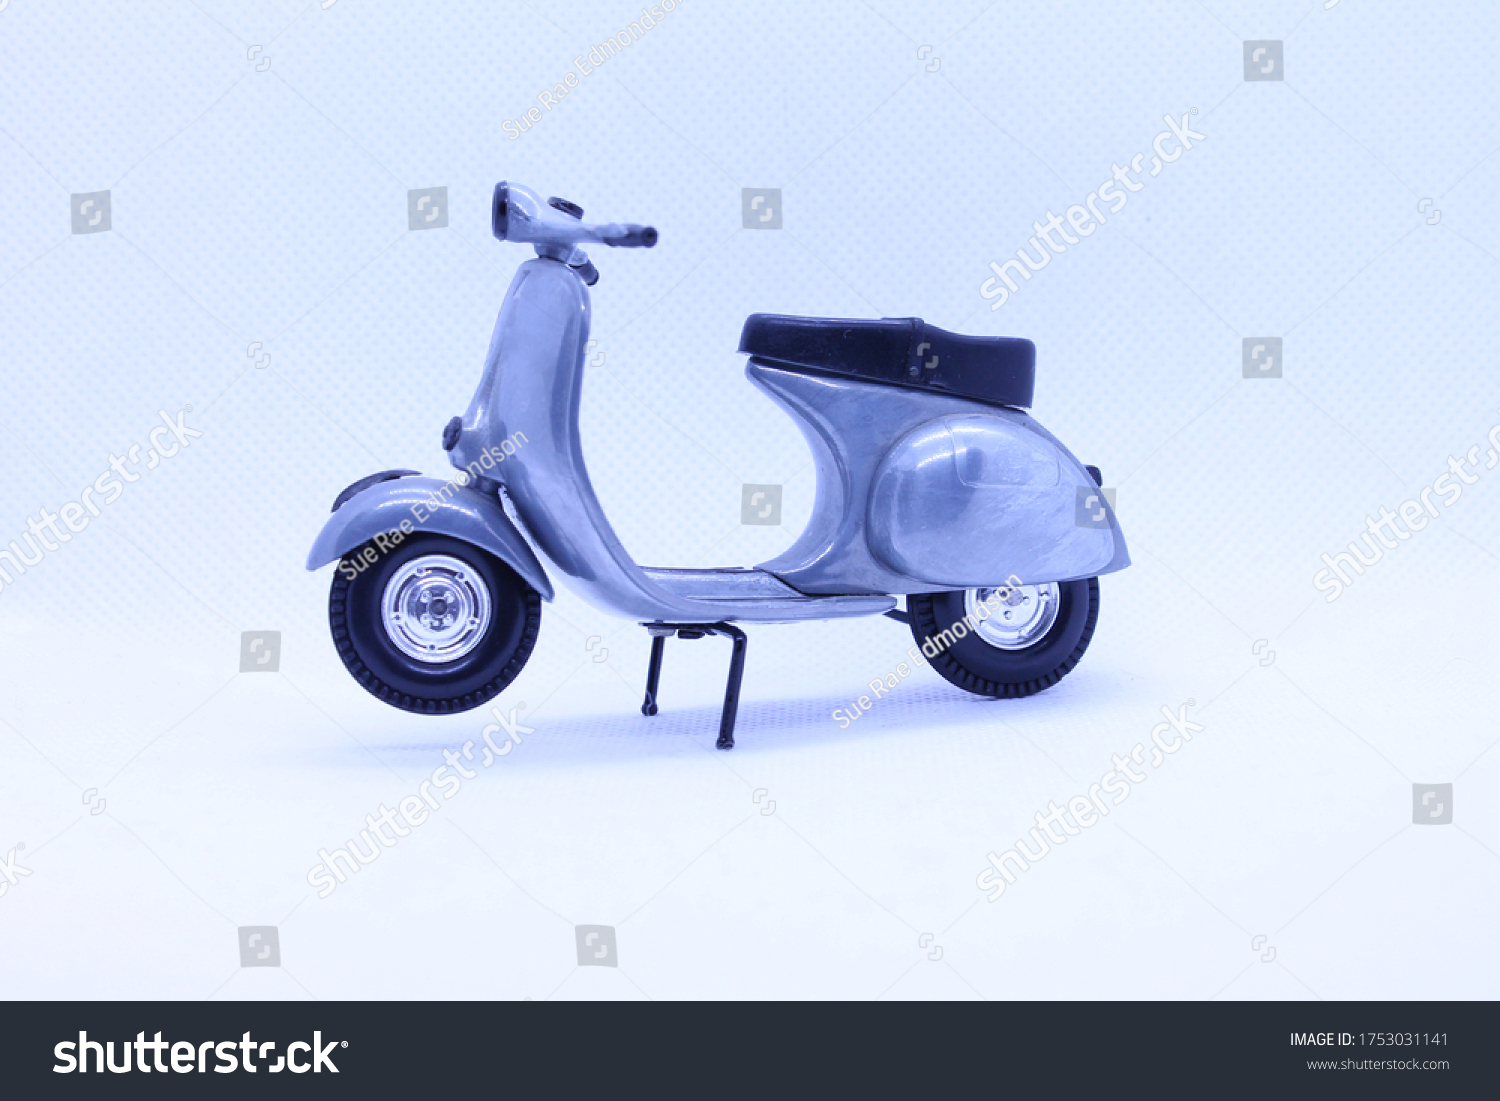 stock-photo-model-scooter-in-silver-and-